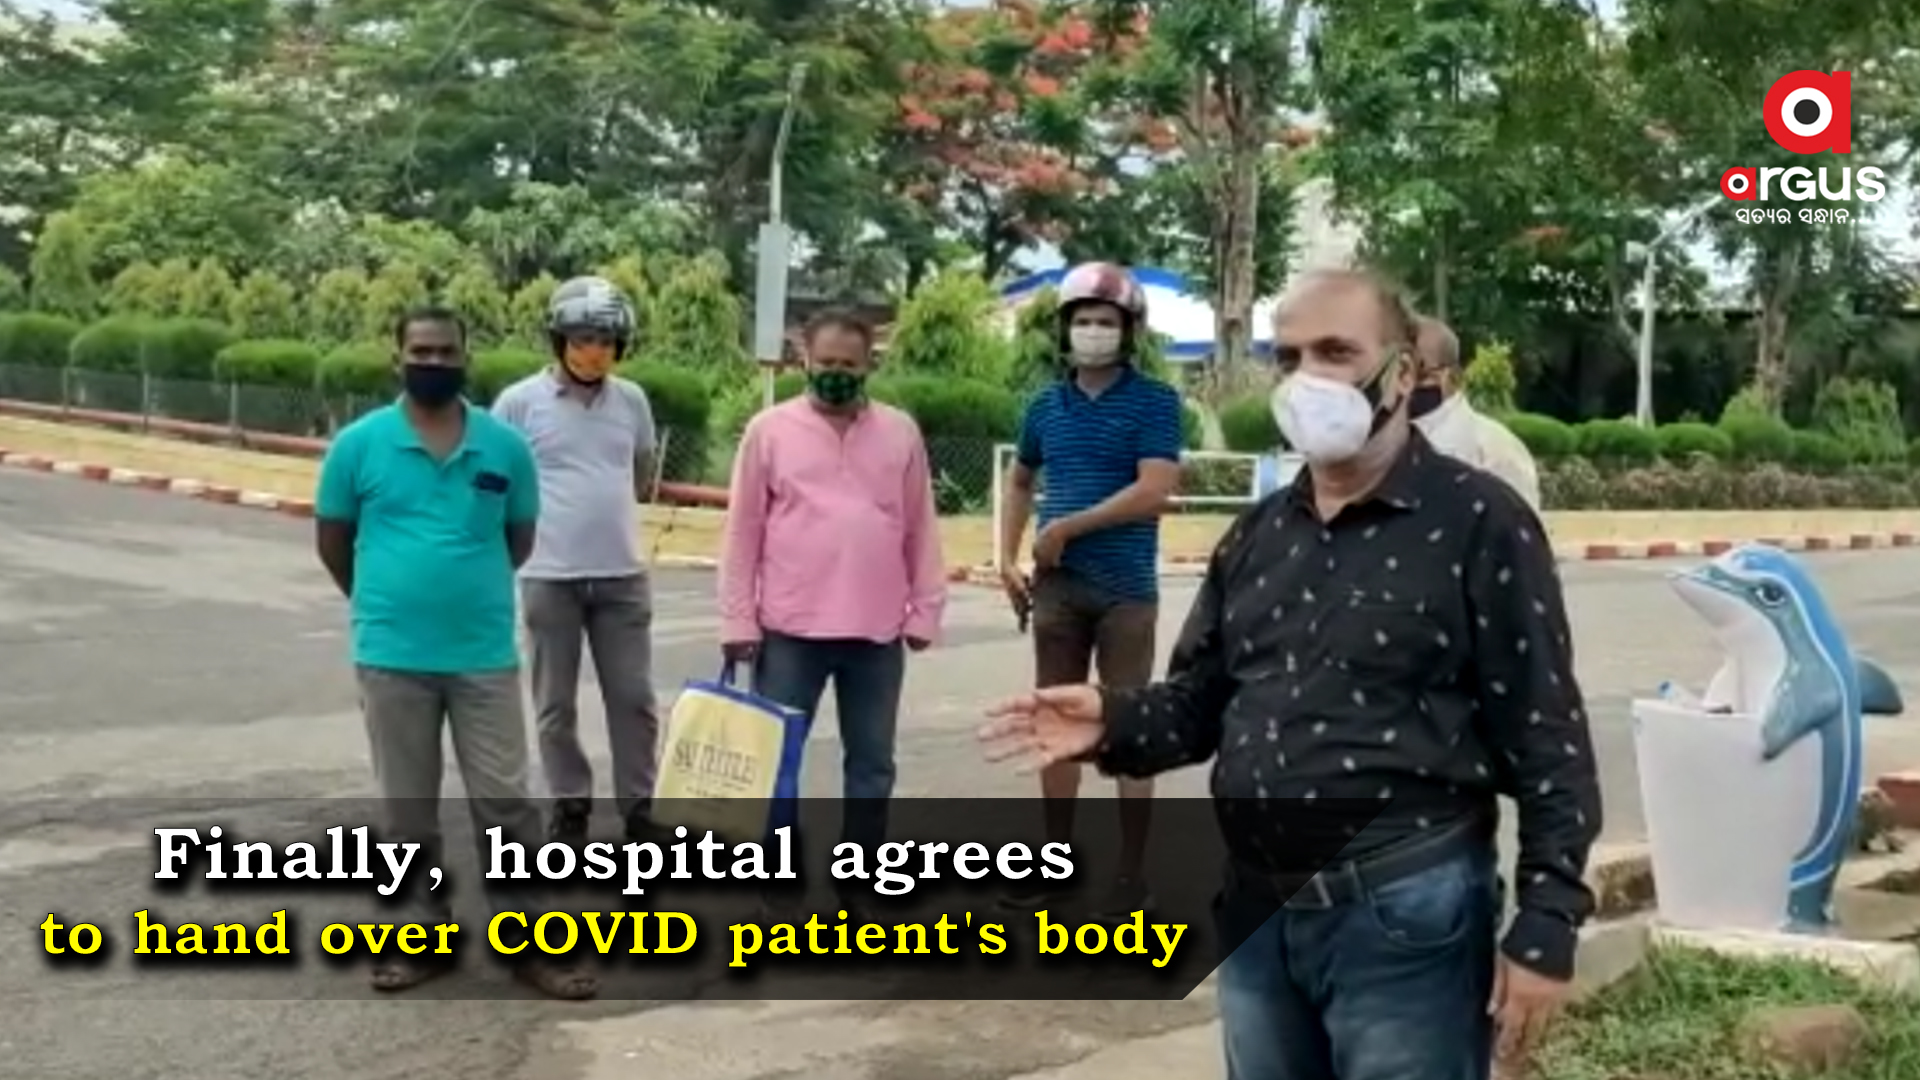 Argus News impact: Hospital agrees to hand over COVID patient's body